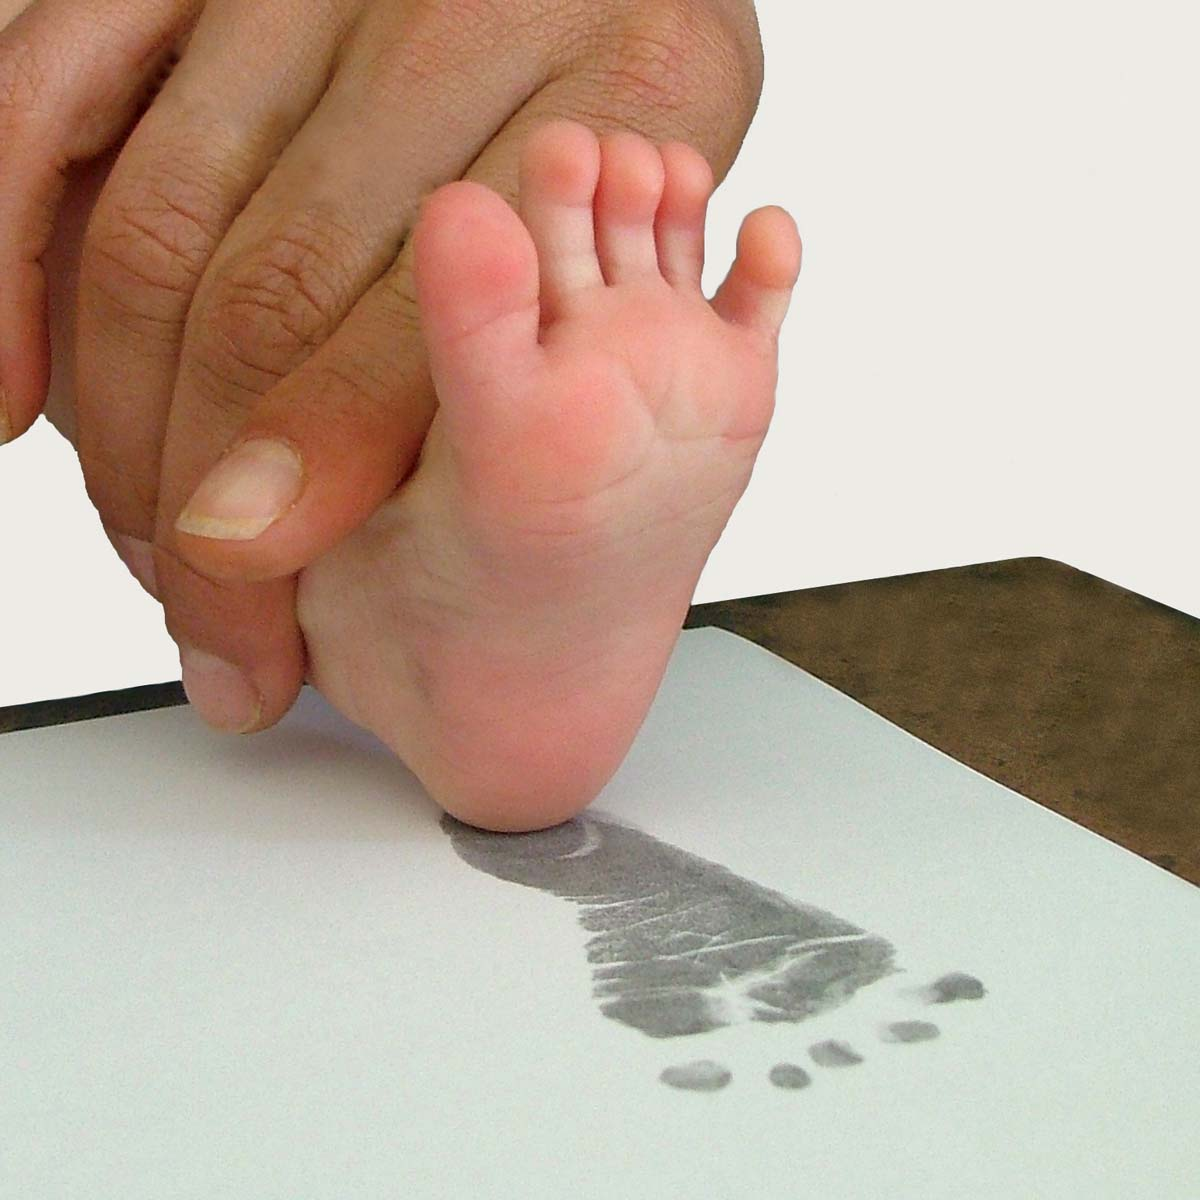 Inkless Baby S Foot Or Hand Print Kit Non Toxic Inkless